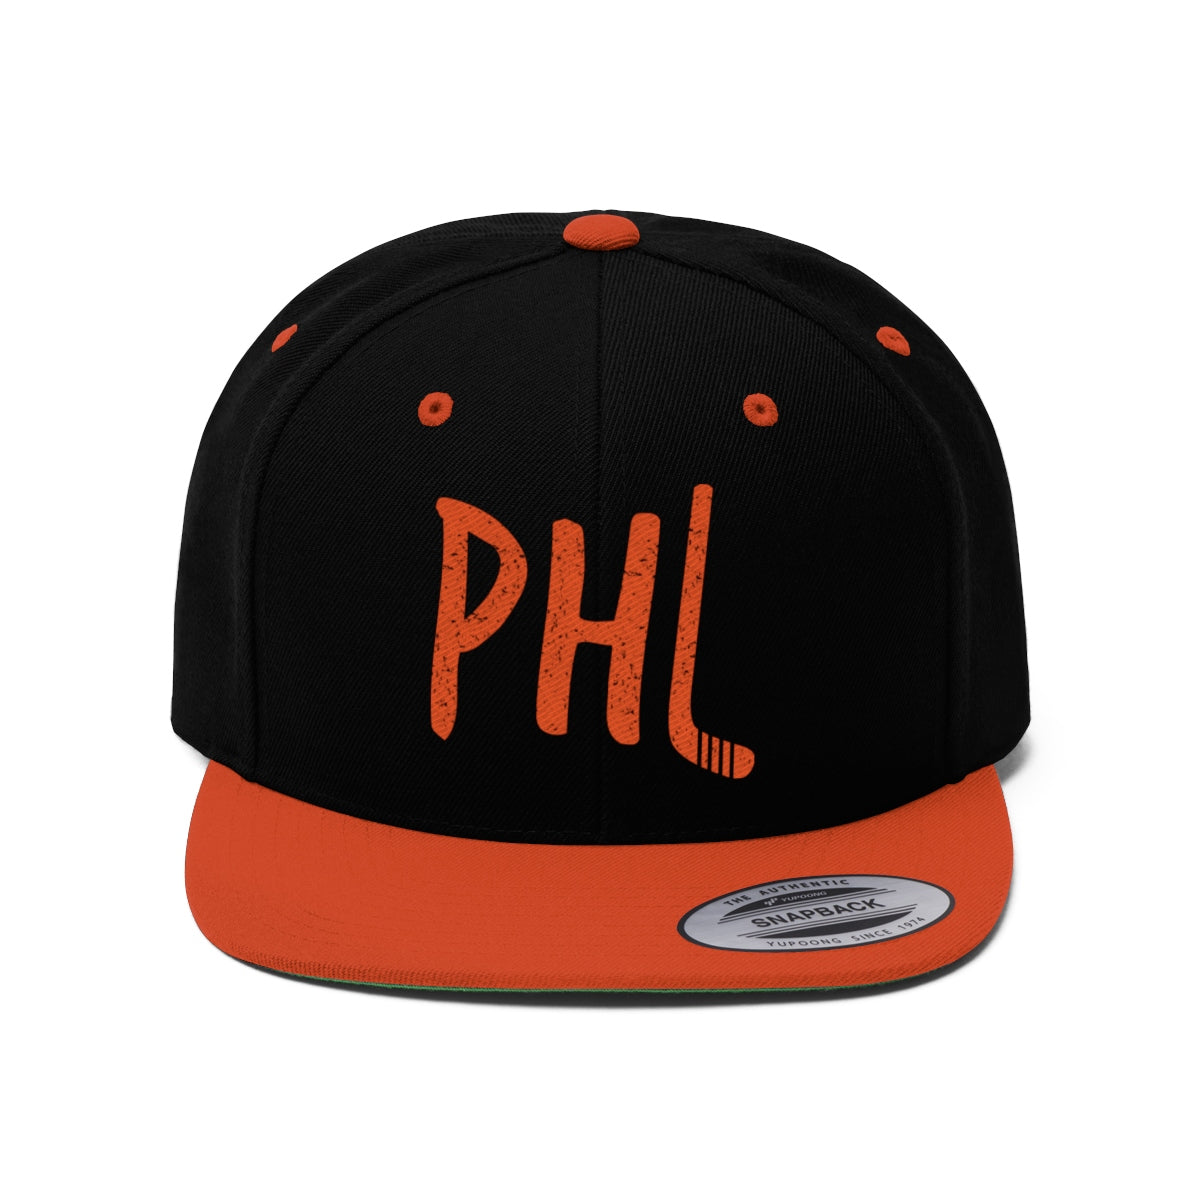 Retro Philadelphia Ice Hockey Embroidered Unisex Flat Bill Hat